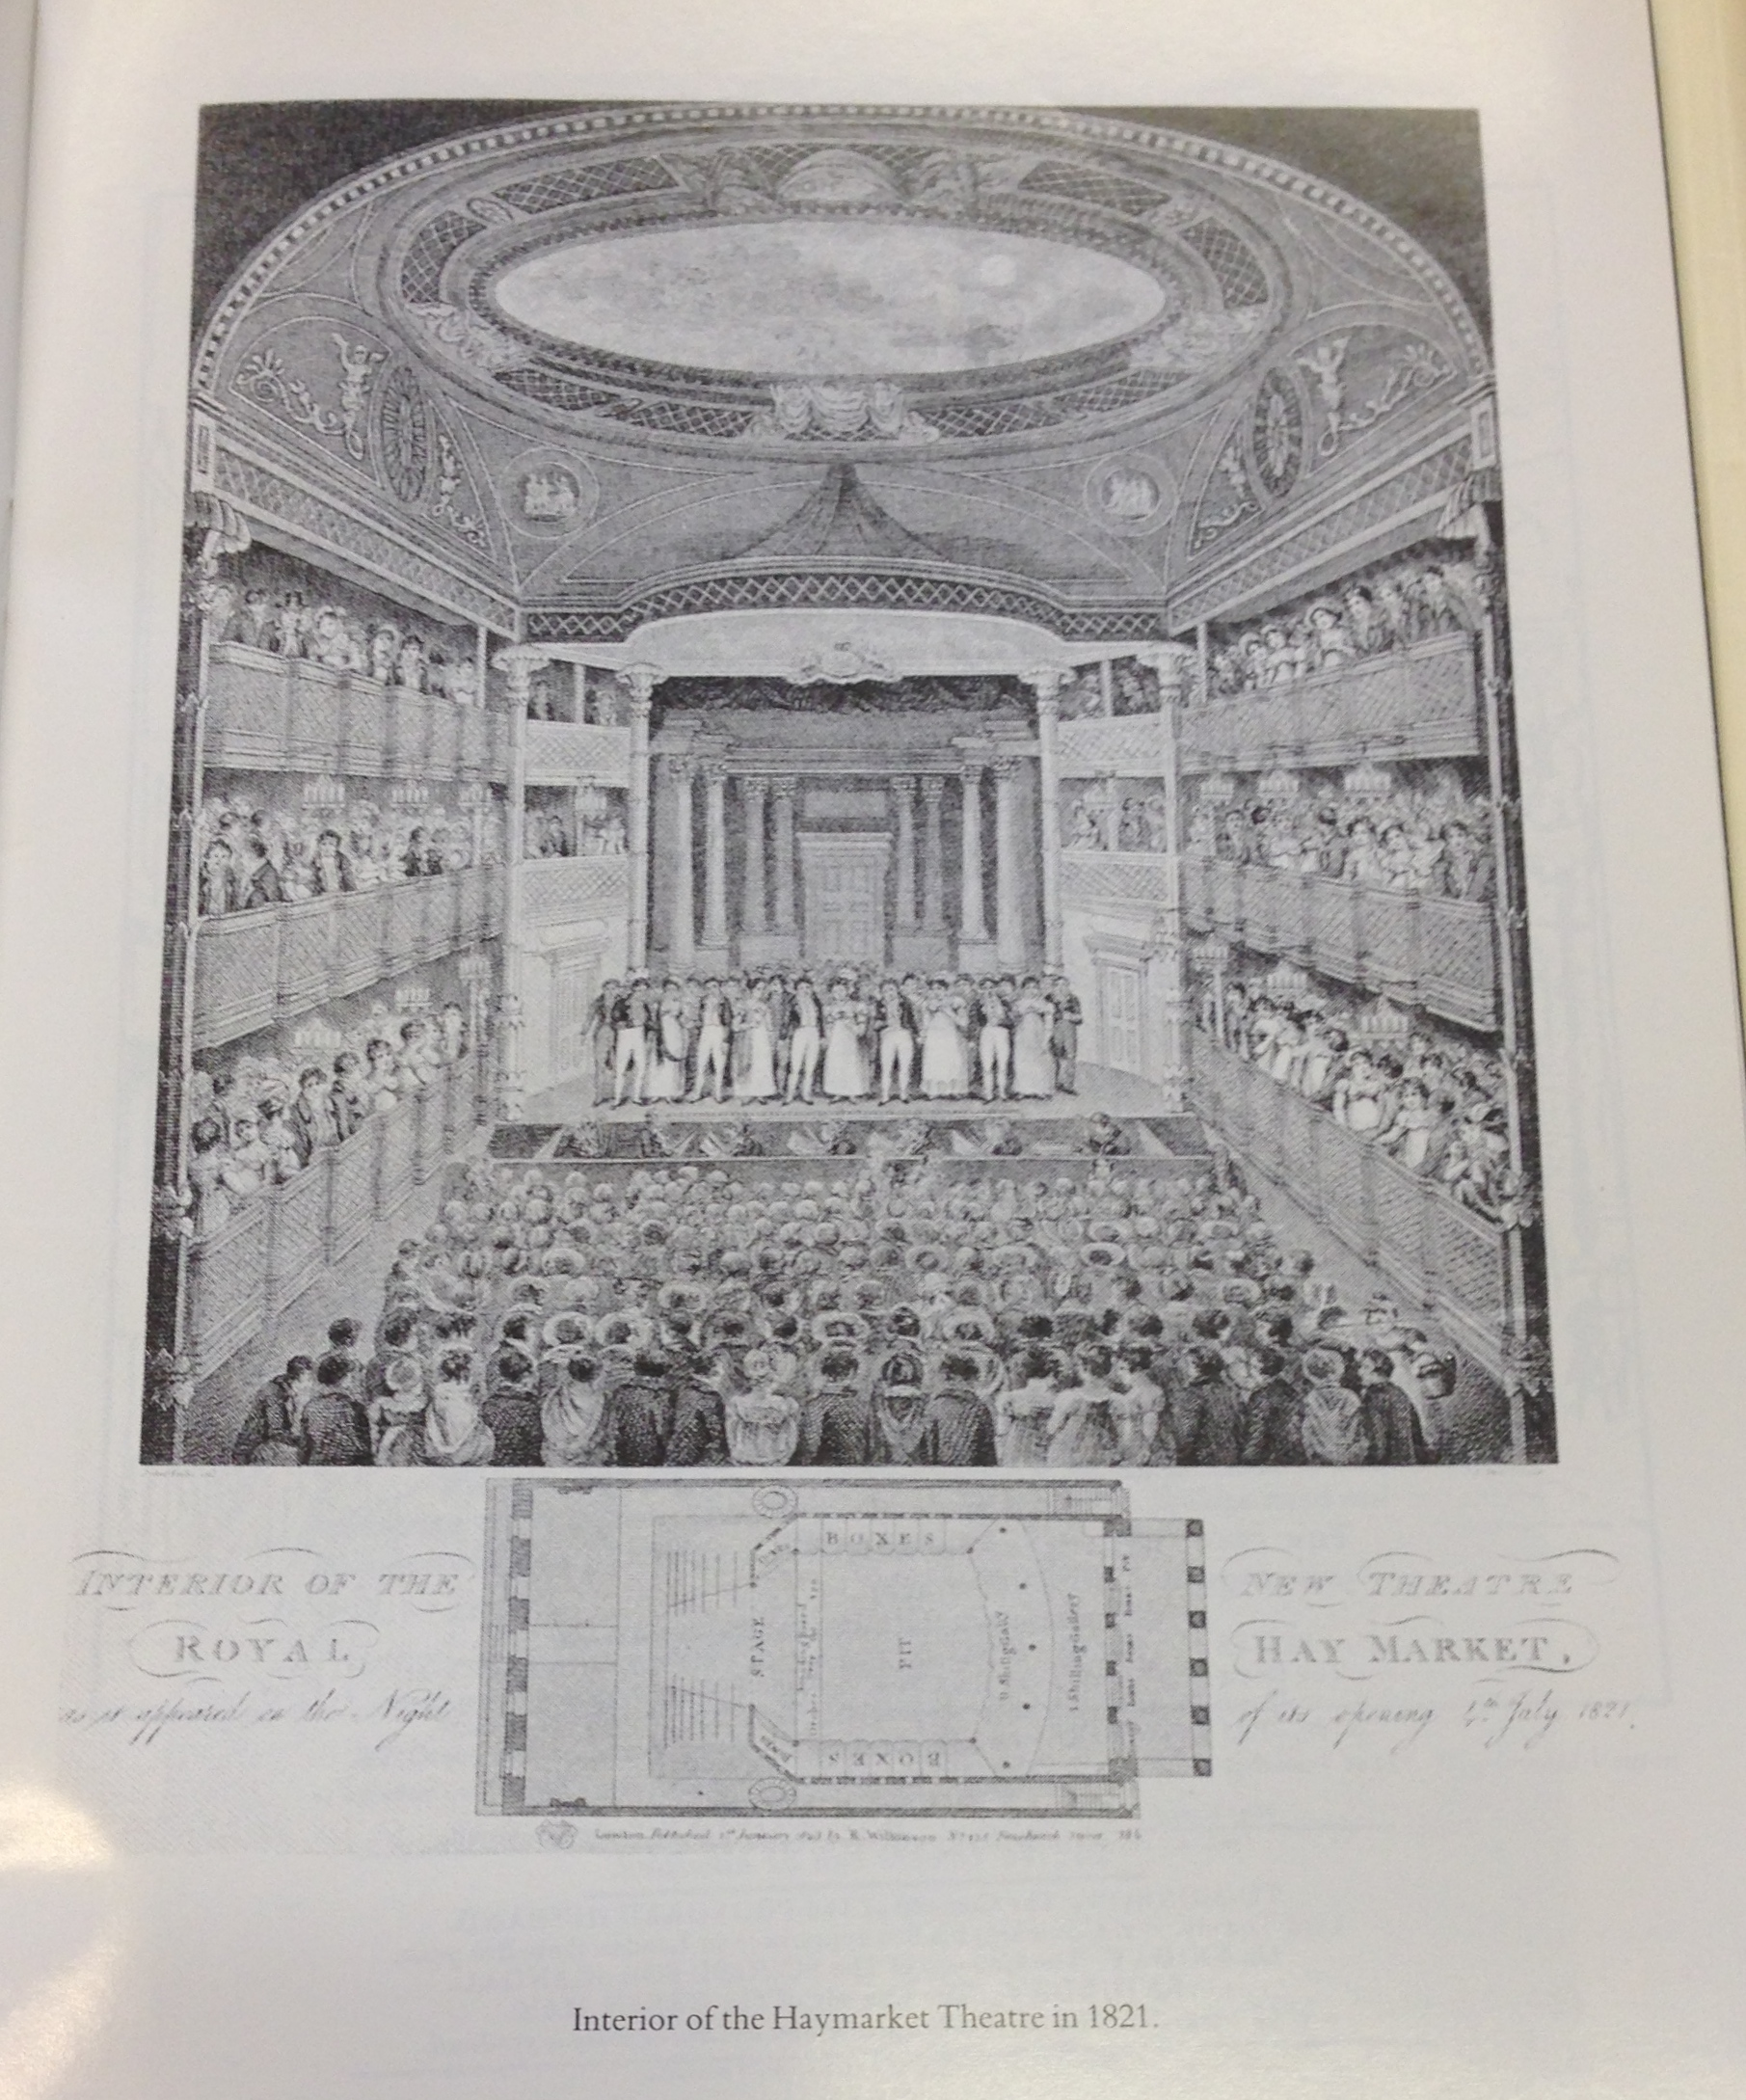 <b>Interior of Haymarket Theatre</b>     	</br>Interior of the Royal Haymarket Theatre, London depicted the night of its opening in July 1821.</br><br/><b>Source: </b><i>Used with permission from the University of Bristol Theatre Collection.</i>